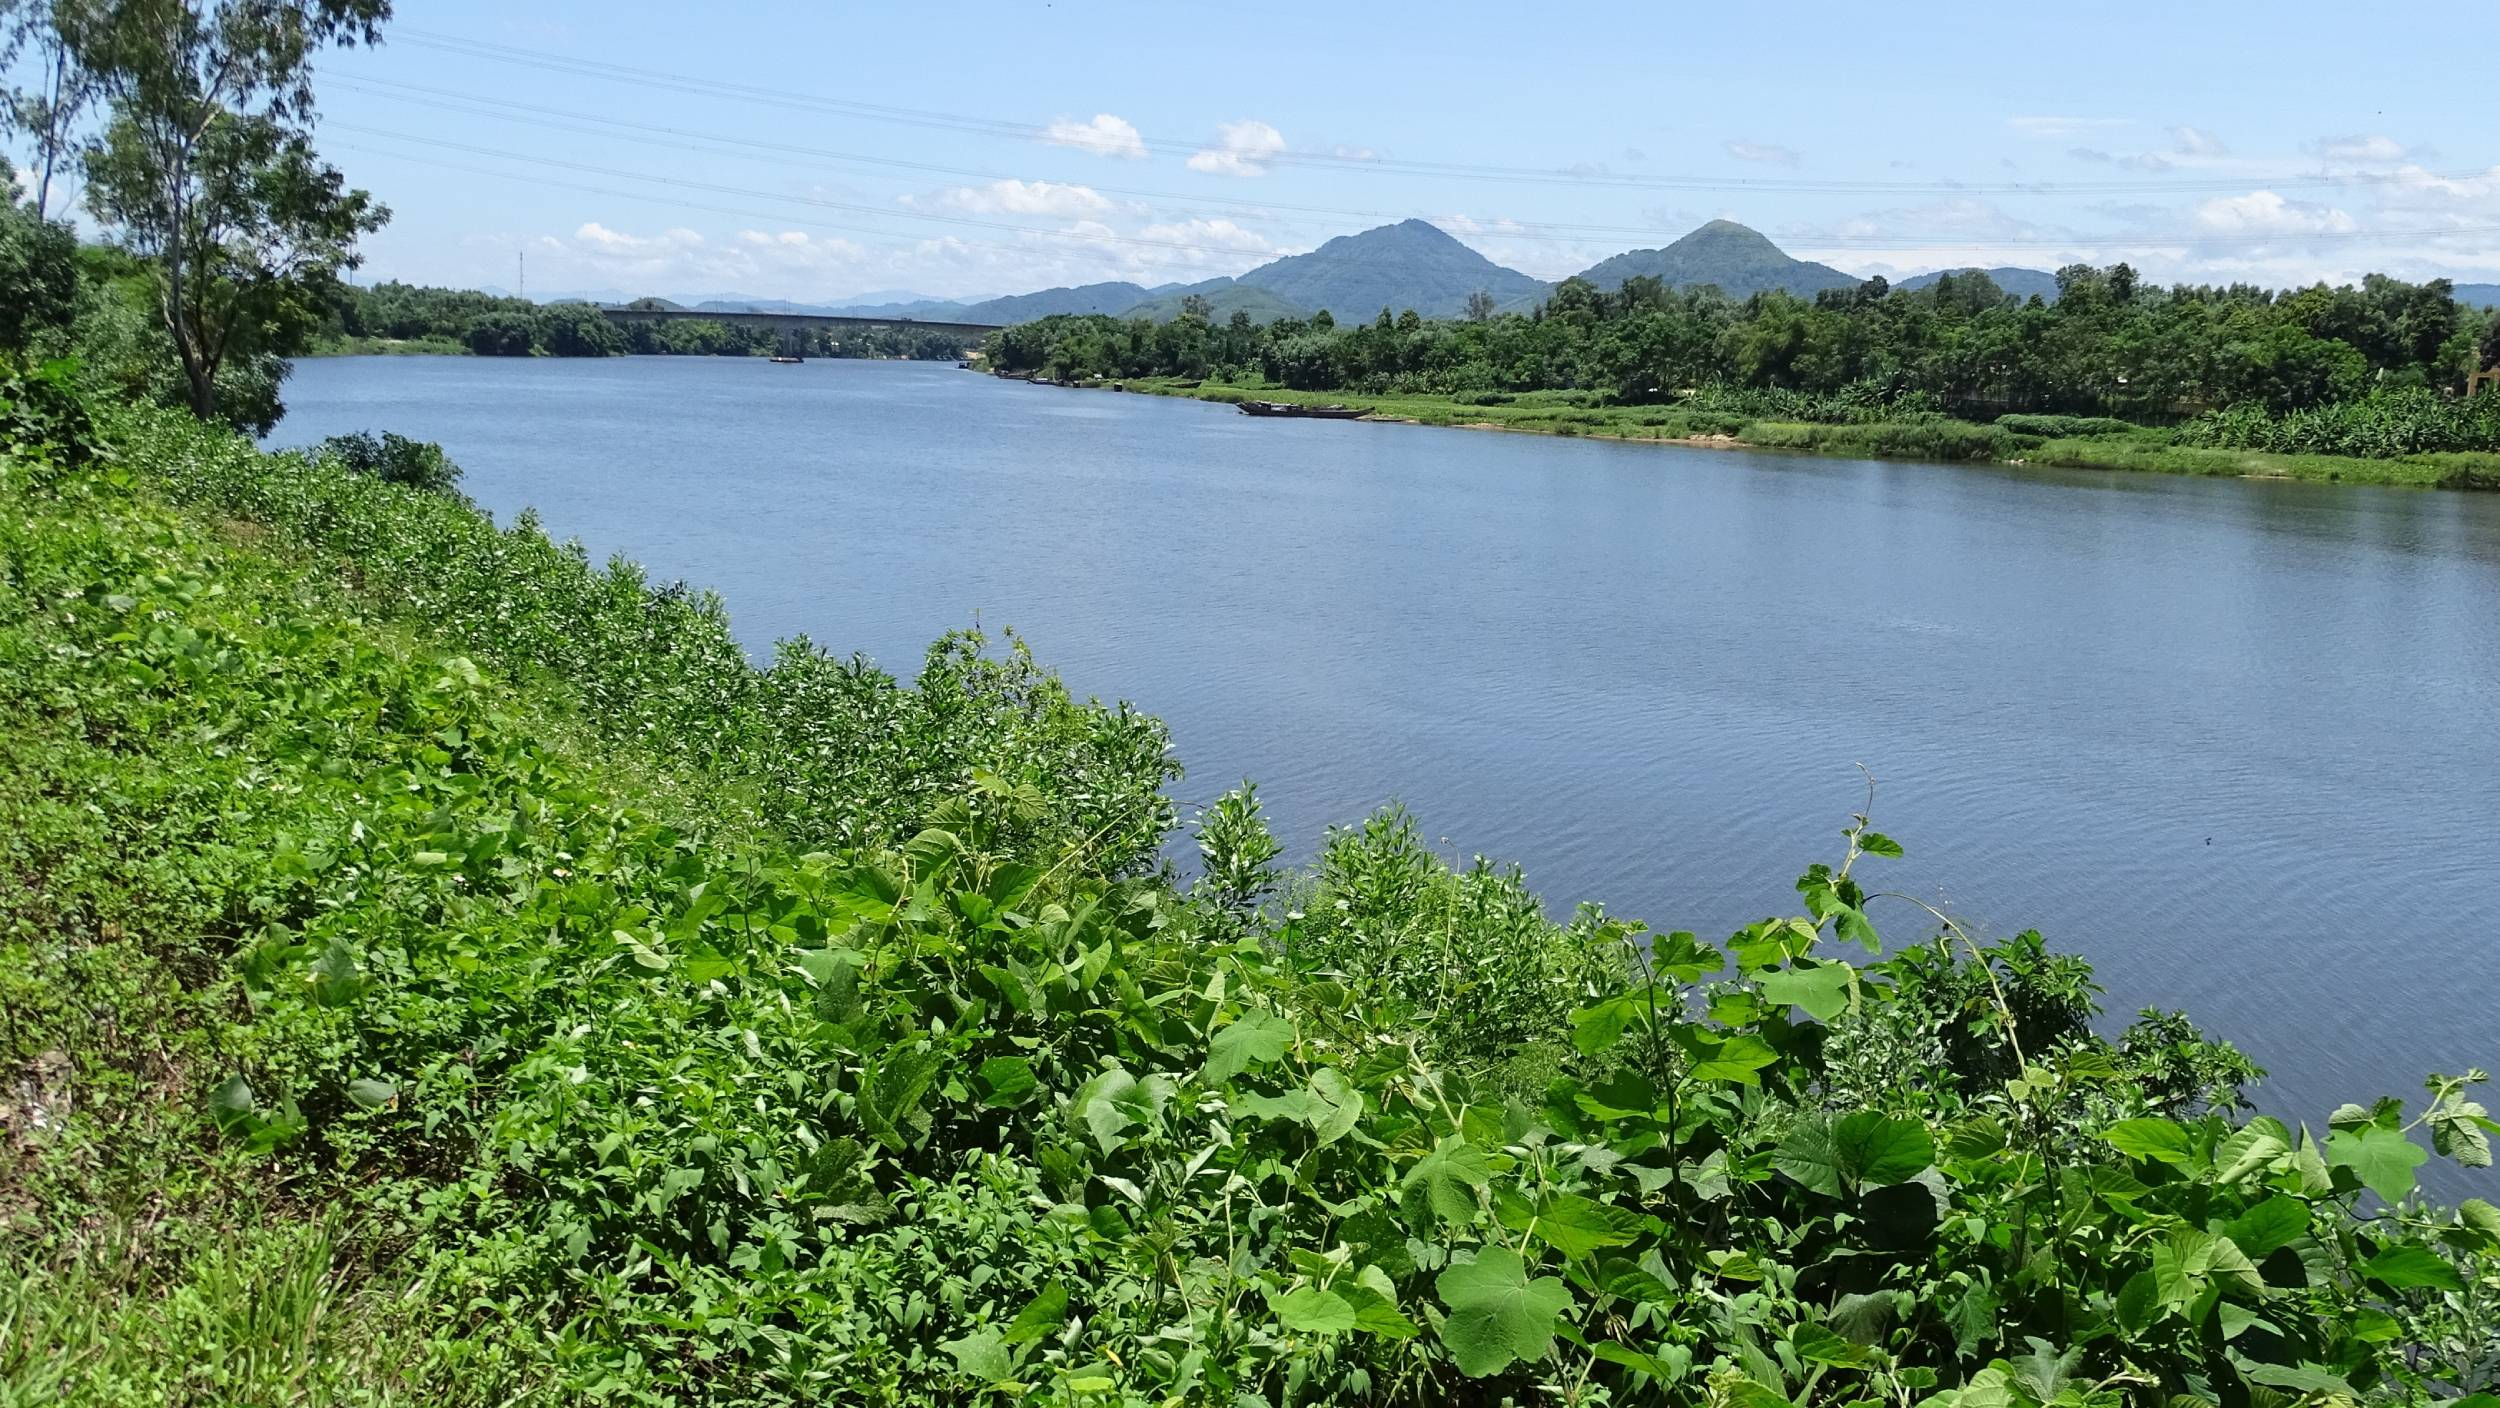 A view at the green banks of the Perfume River and the mountains in the distance from the road to Minh Manh tomb